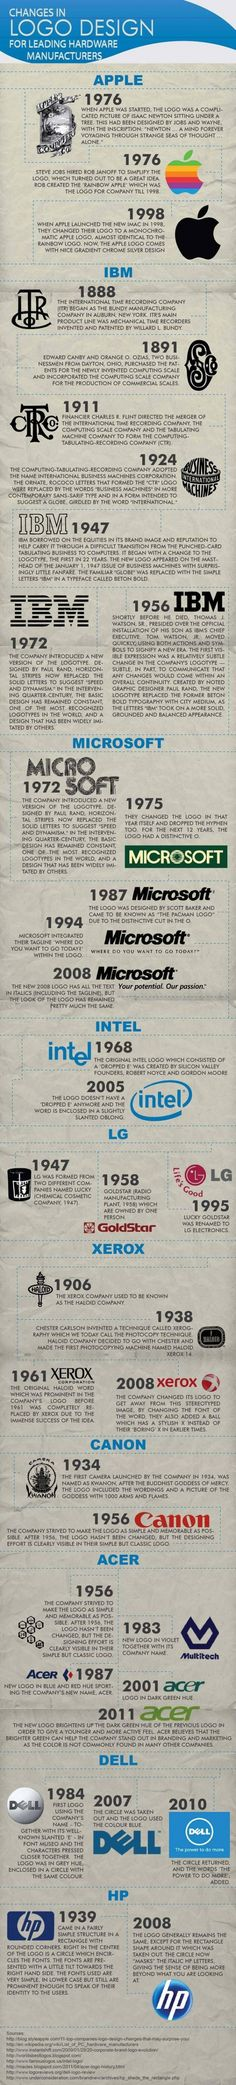 Changes in design of famous logos